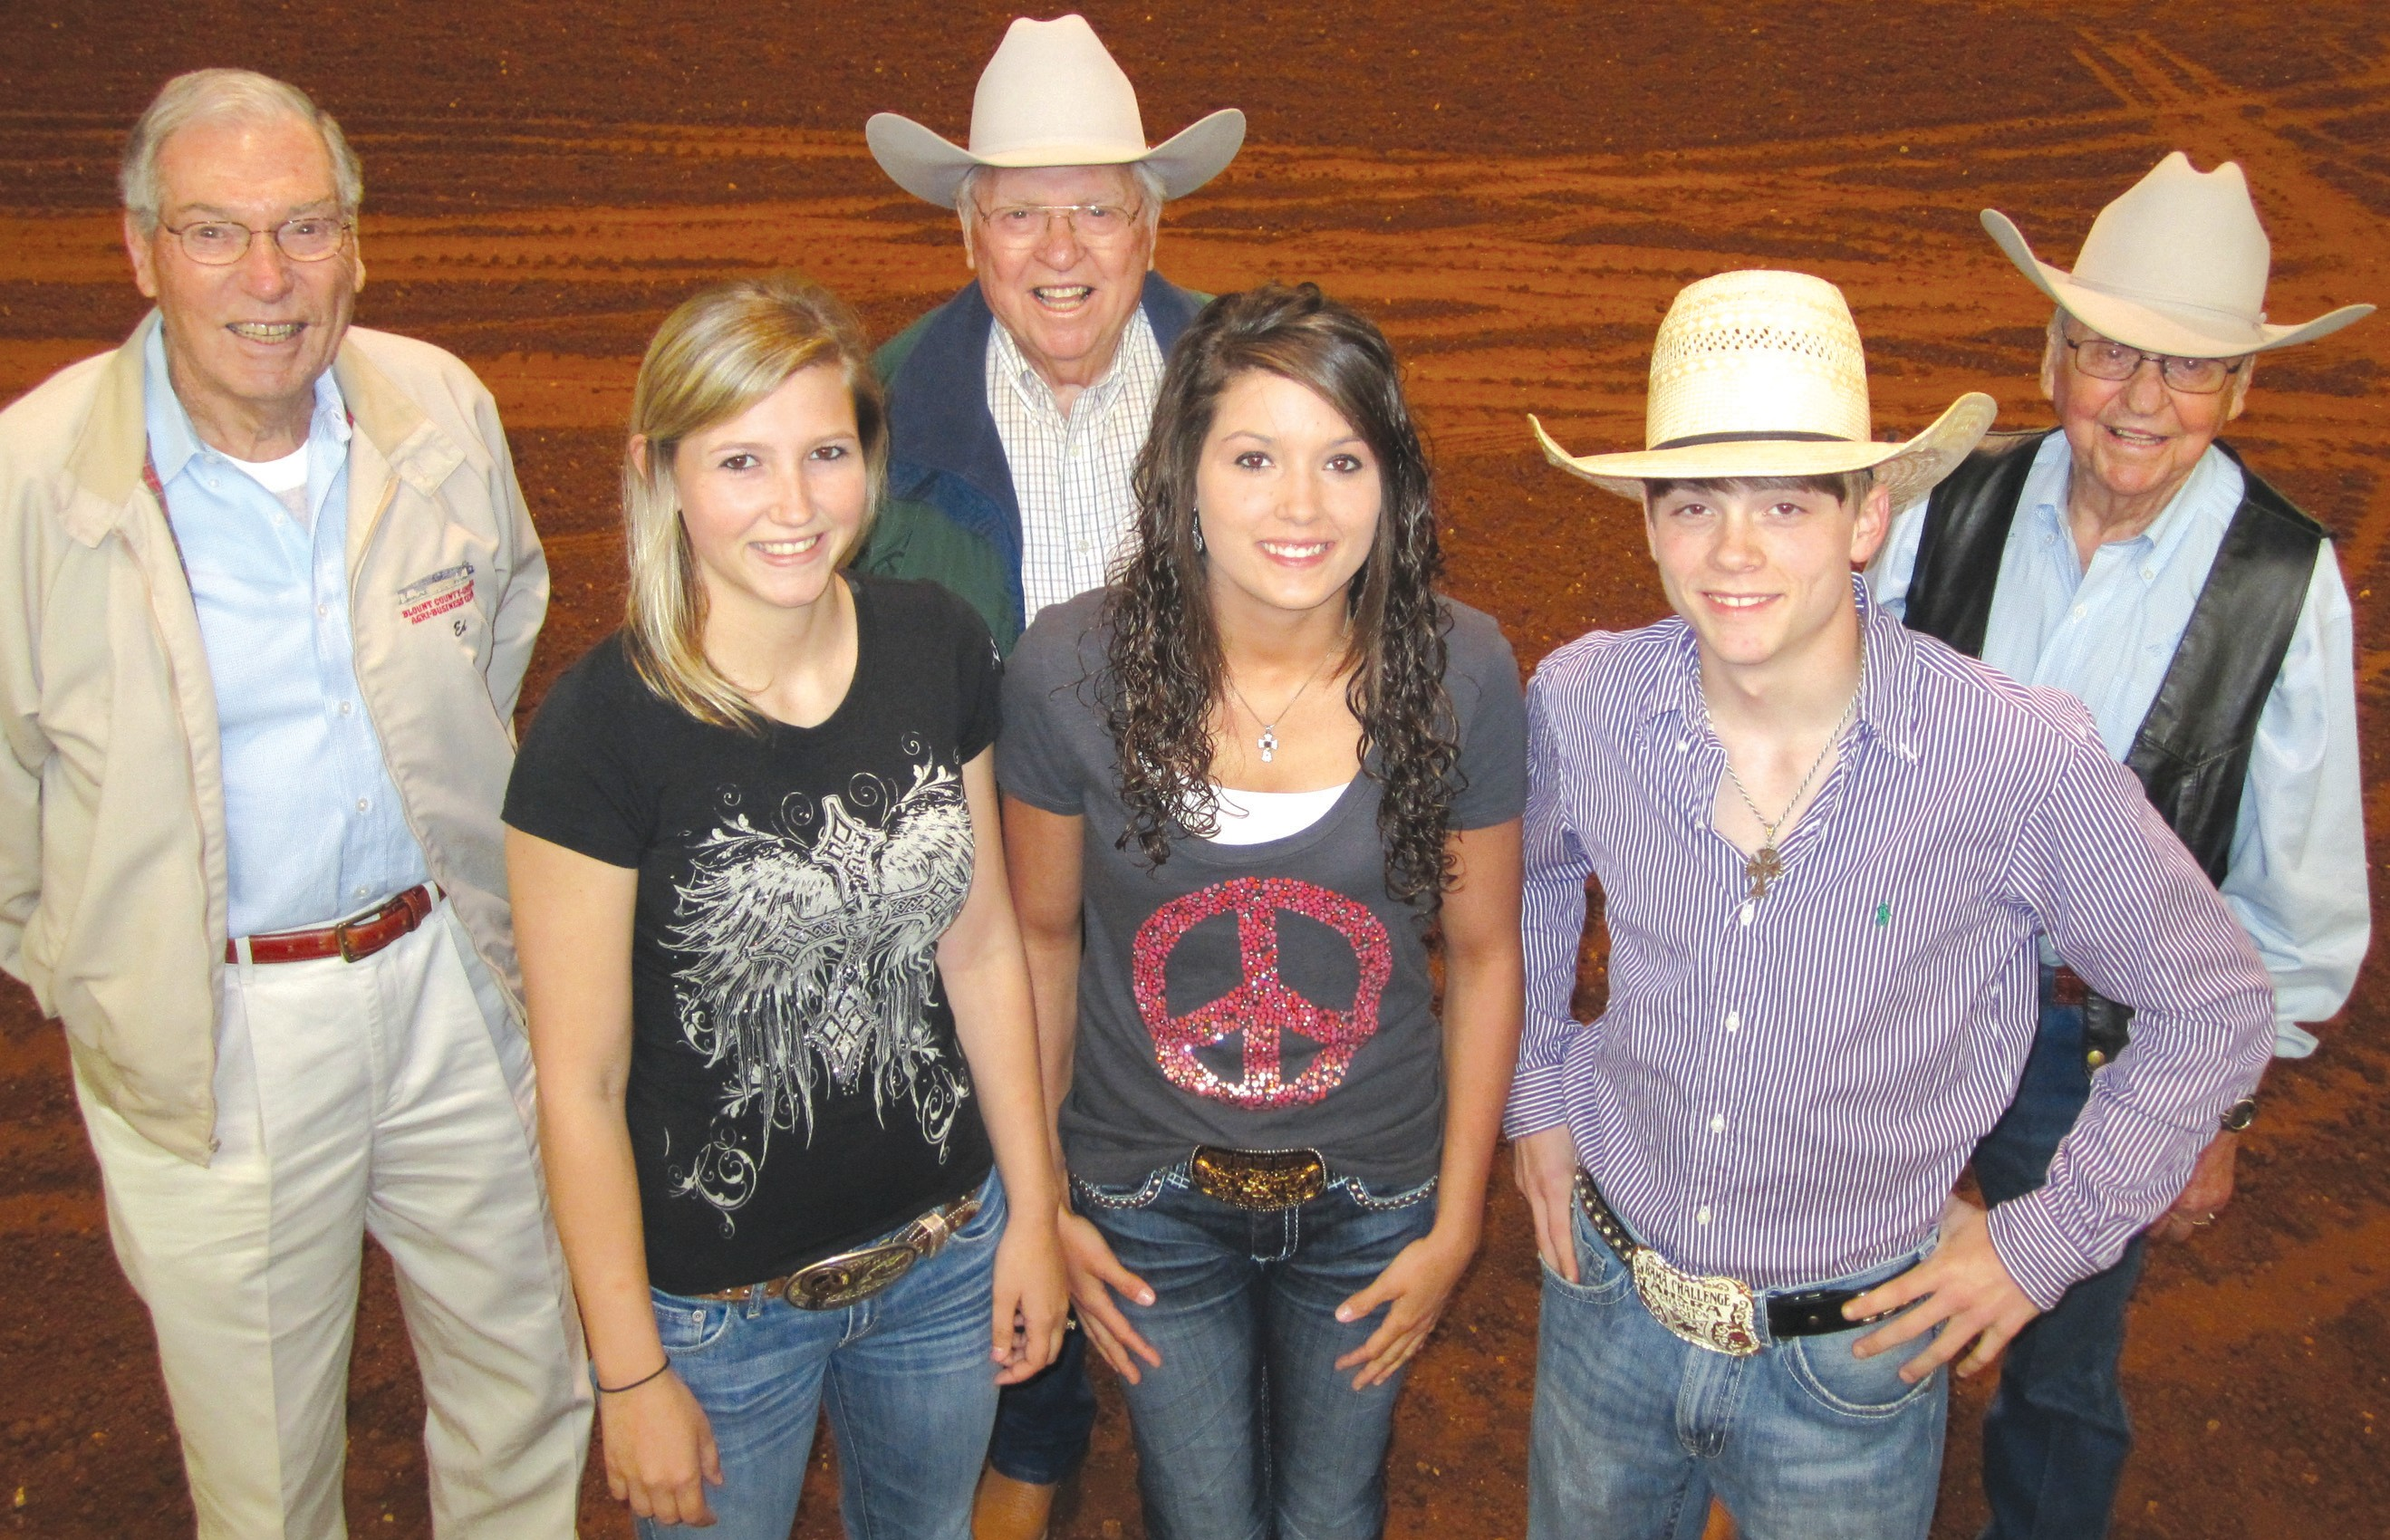 A whole generation's missing in this shot of Blount County rodeo pros who will take the arena this weekend. But never fear: between these seniors and youngsters, they've got the rodeo covered. Among the young'uns (from left) are Valerie Smith of Oneonta and Anna Smith of Blountsville (no relation) who bring both beauty and excitement to the cowgirl barrel races. Josh Moorer of Rosa says he intends to win – and just might – the bull-riding contest. He nearly did last year. All three are professional riders who travel the rodeo circuit. Meanwhile the senior cowboys have set a record of their own: for 30 years – since the Agribusiness Center first opened in 1982 and hosted its first rodeo in its first week – they've brought the rodeo to Blount County and are not shy about hyping it as the best in the state: (from left) Ed Phillips, Vance Morton, and Ralph Morton, all charter members of the Agribusiness Center annual rodeo production. – Ron Gholson